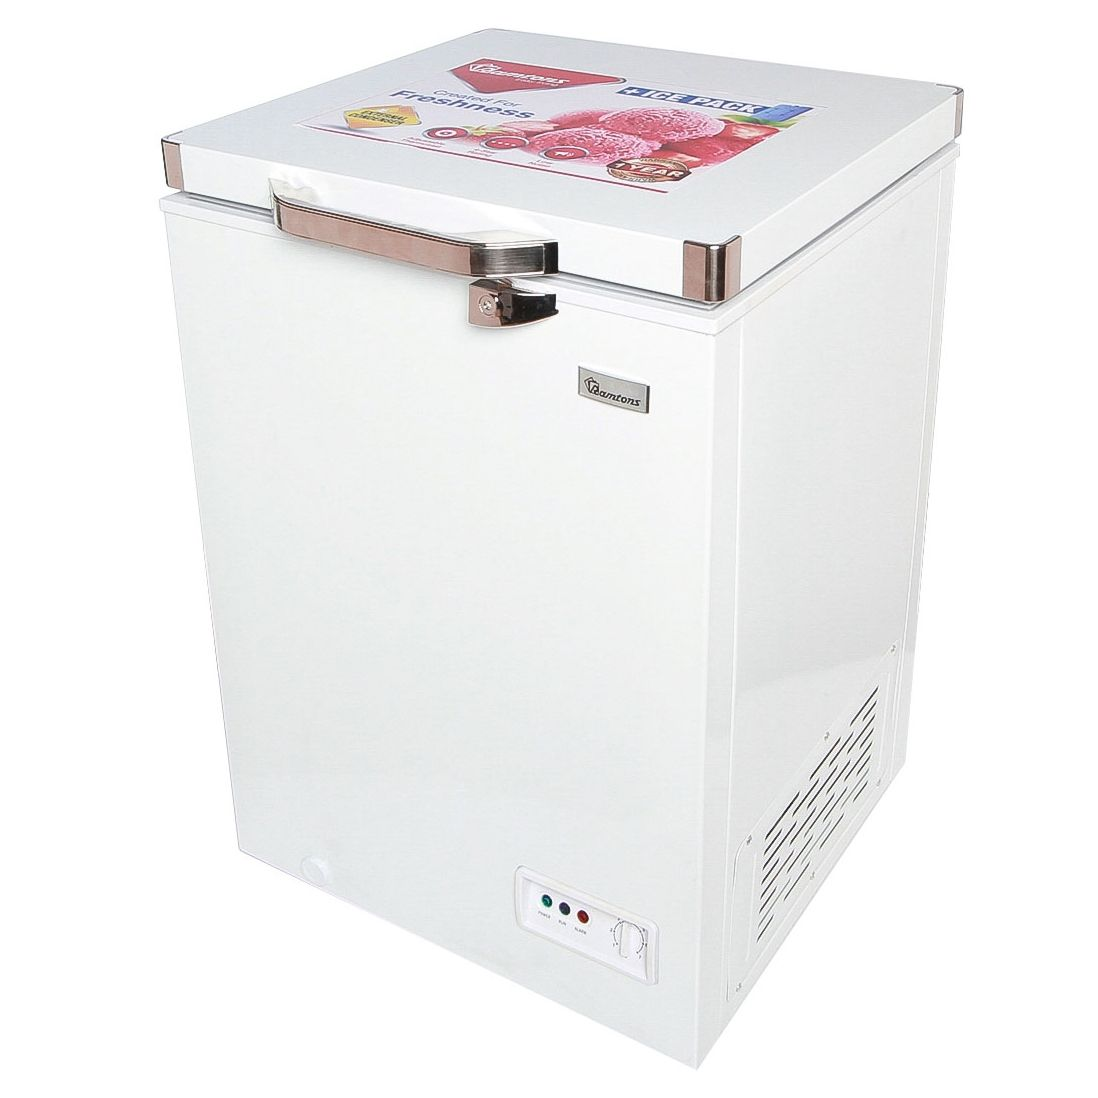 Ramtons Chest Freezer CF/230 in Kenya 93 LITERS ALUMINIUM INTERIOR CHEST FREEZER